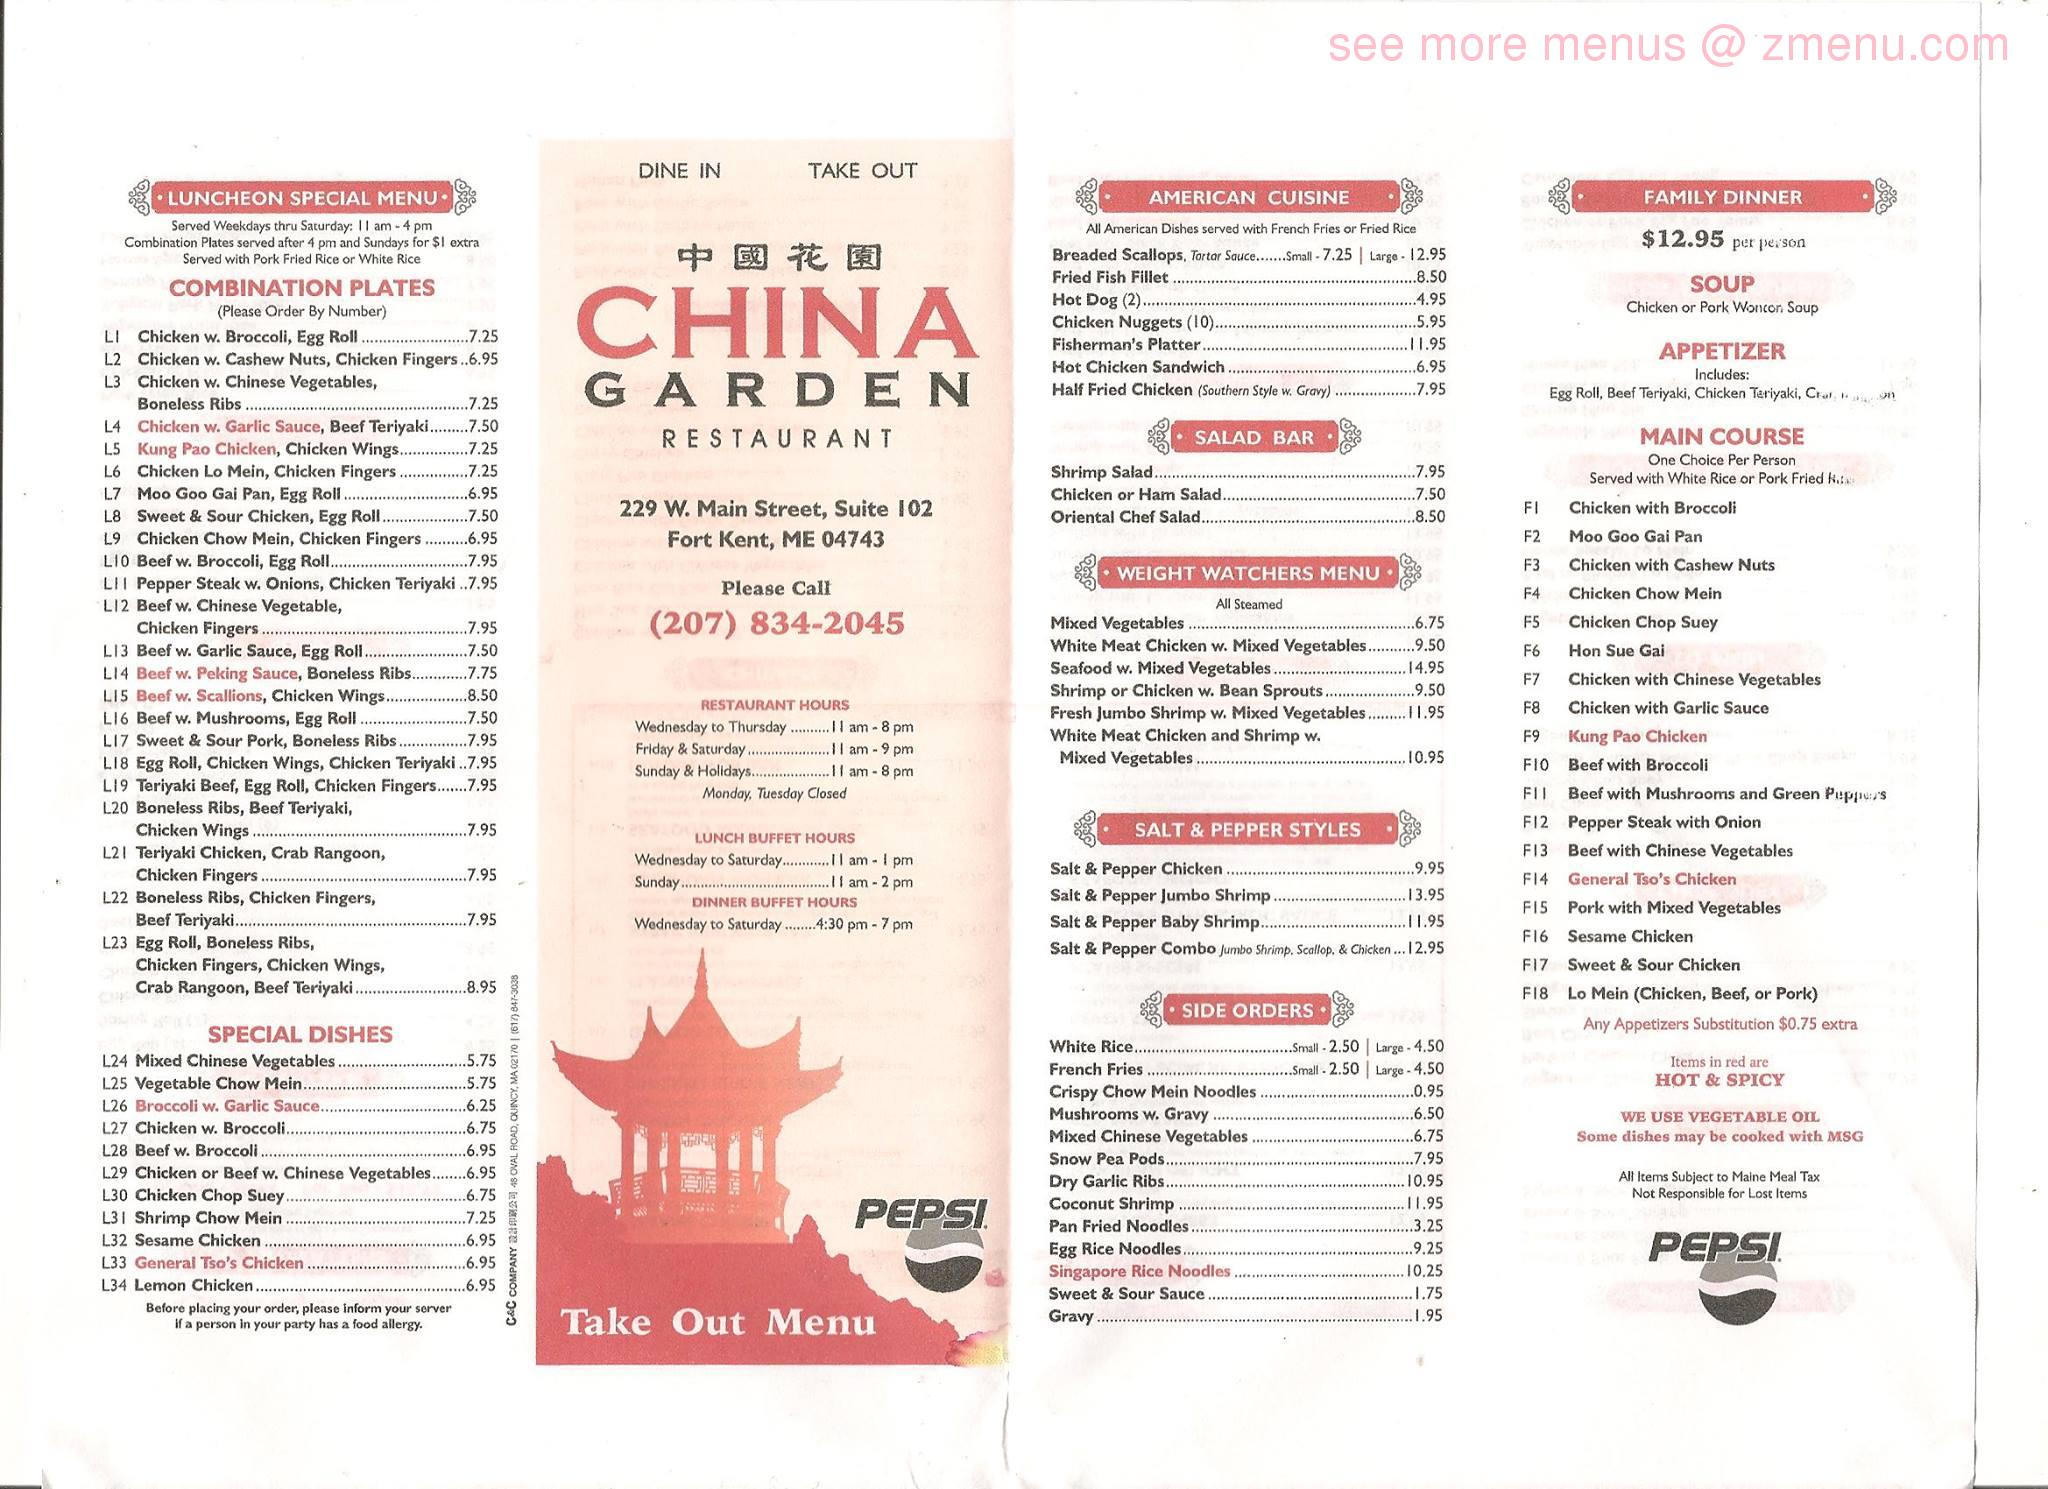 Online Menu Of China Garden Restaurant Fort Kent Maine 04743 Zmenu